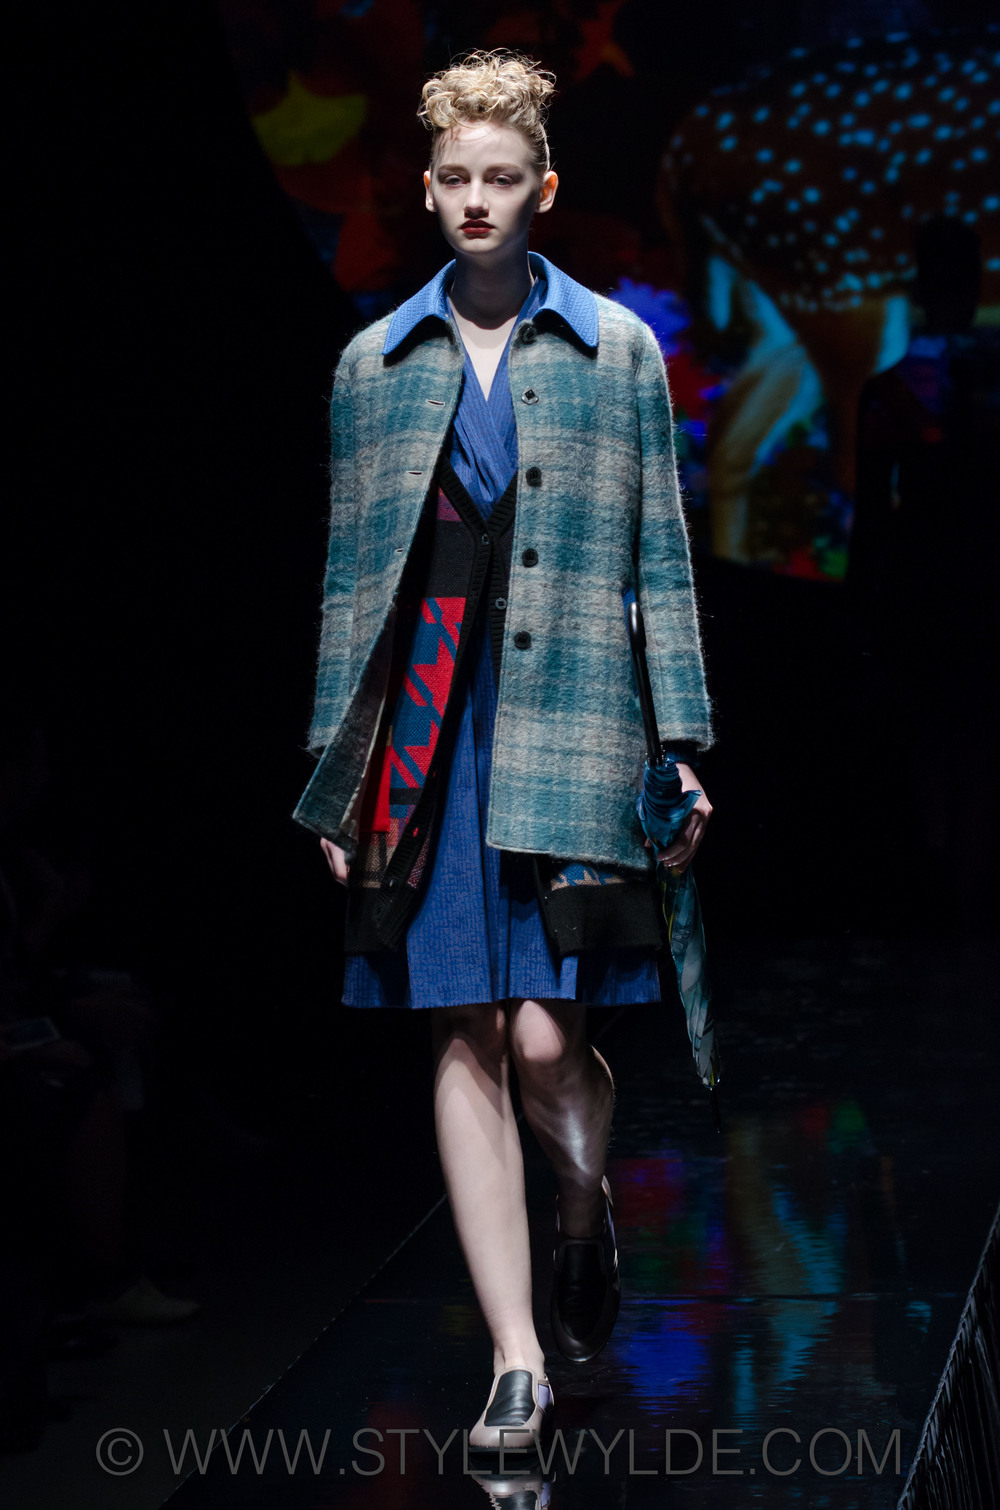 StyleWylde_INProcess_AW14_edited (1 of 1)-15.jpg